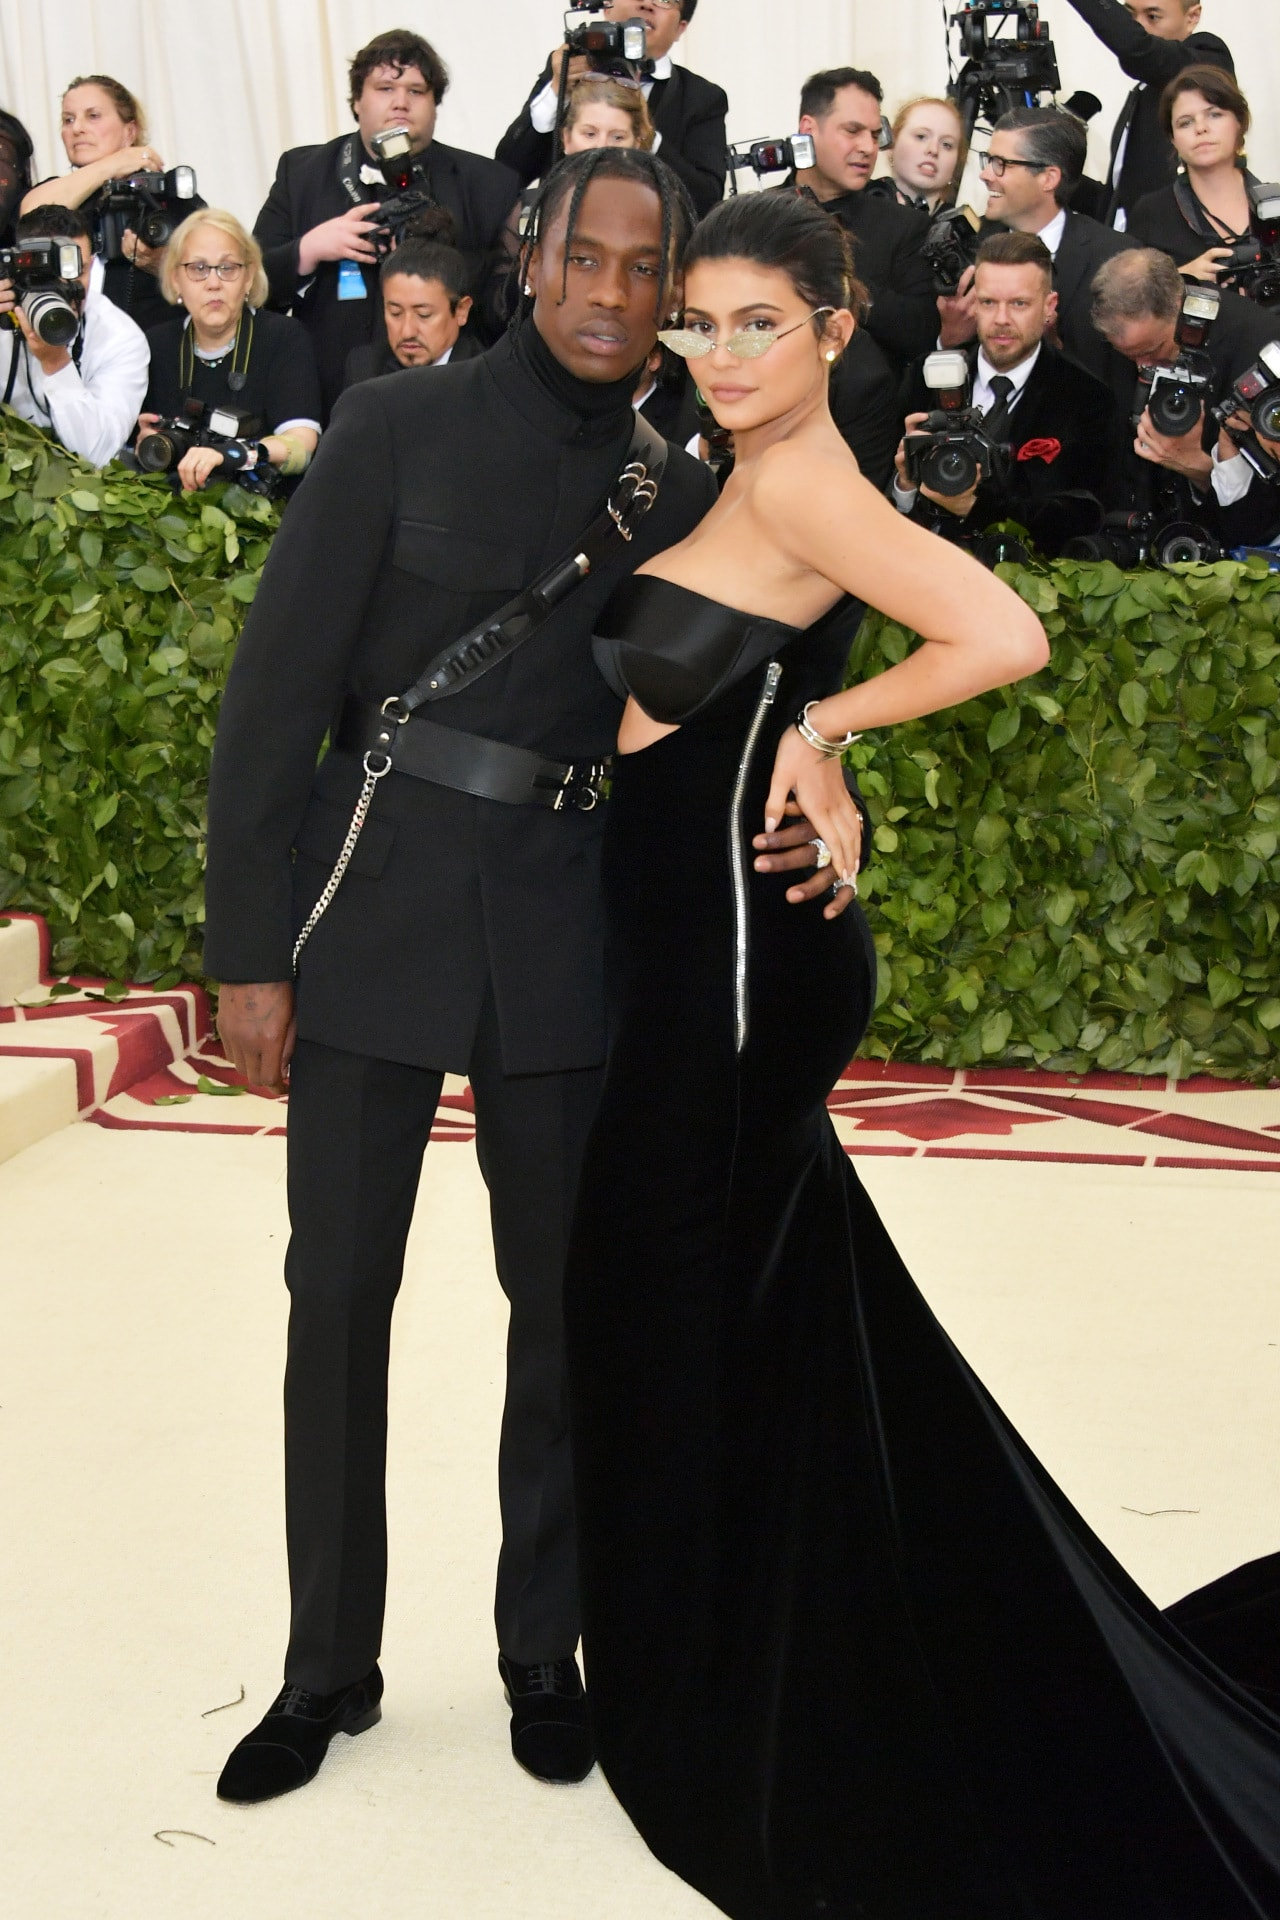 Romance on the red carpet: 29 of our favourite couples from the Met Gala